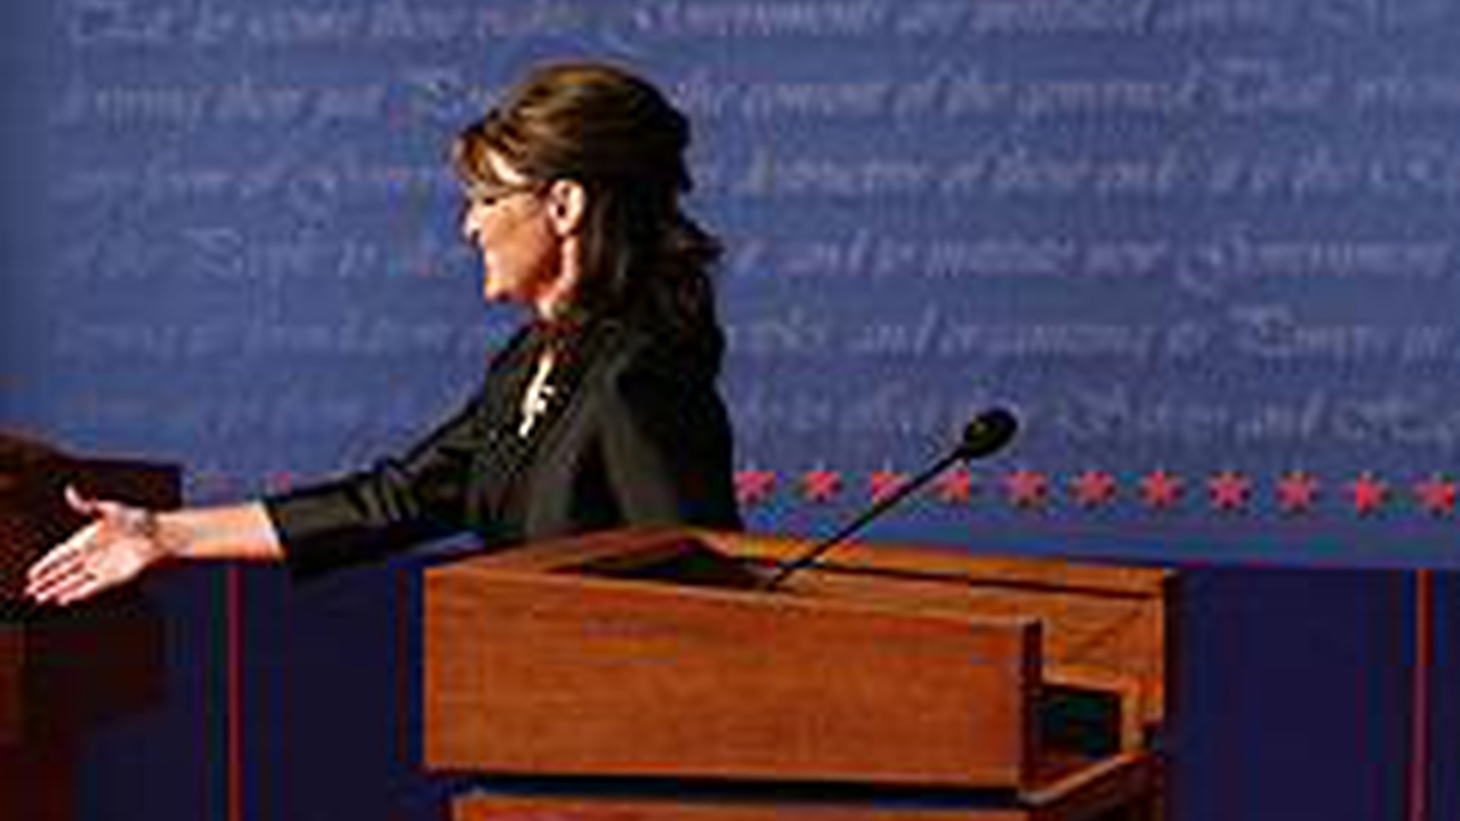 We take on Palin's penchant for winking and Biden's botox, the virtual absence of abortion in the debate, hypocrisy of the GOP on free markets and government bailouts. Plus, should we have adopted the Soros solution to Wall Street's ills?